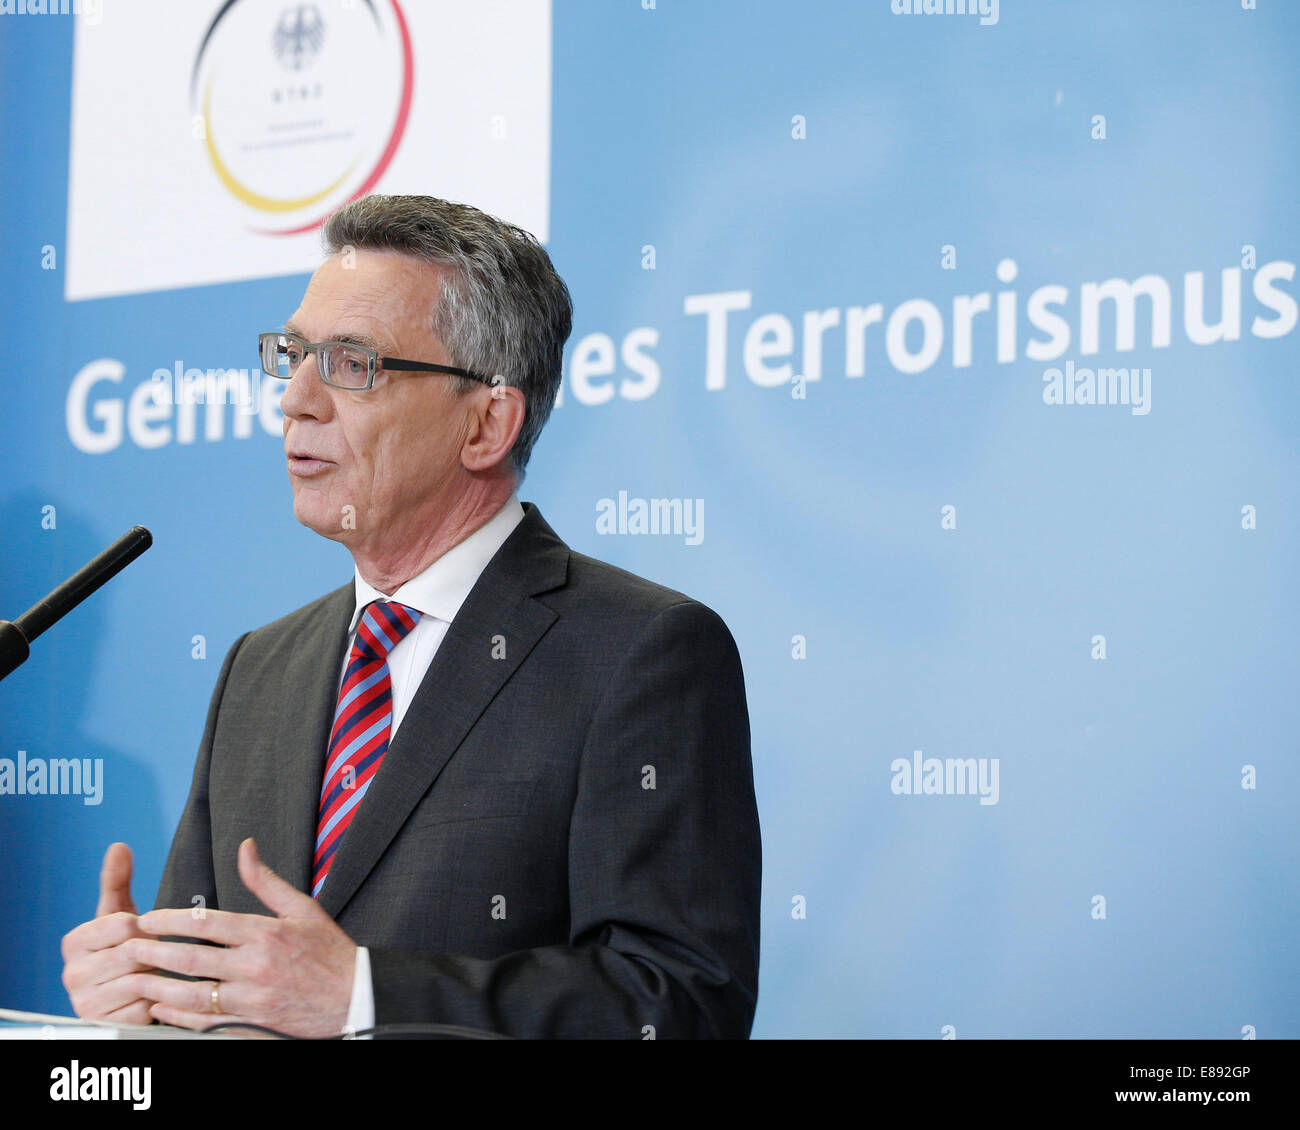 Berlin, Germany. 2nd October, 2014. Federal Minister of the Interior Thomas de Maizire informs in the GTAZ to the Stock Photo